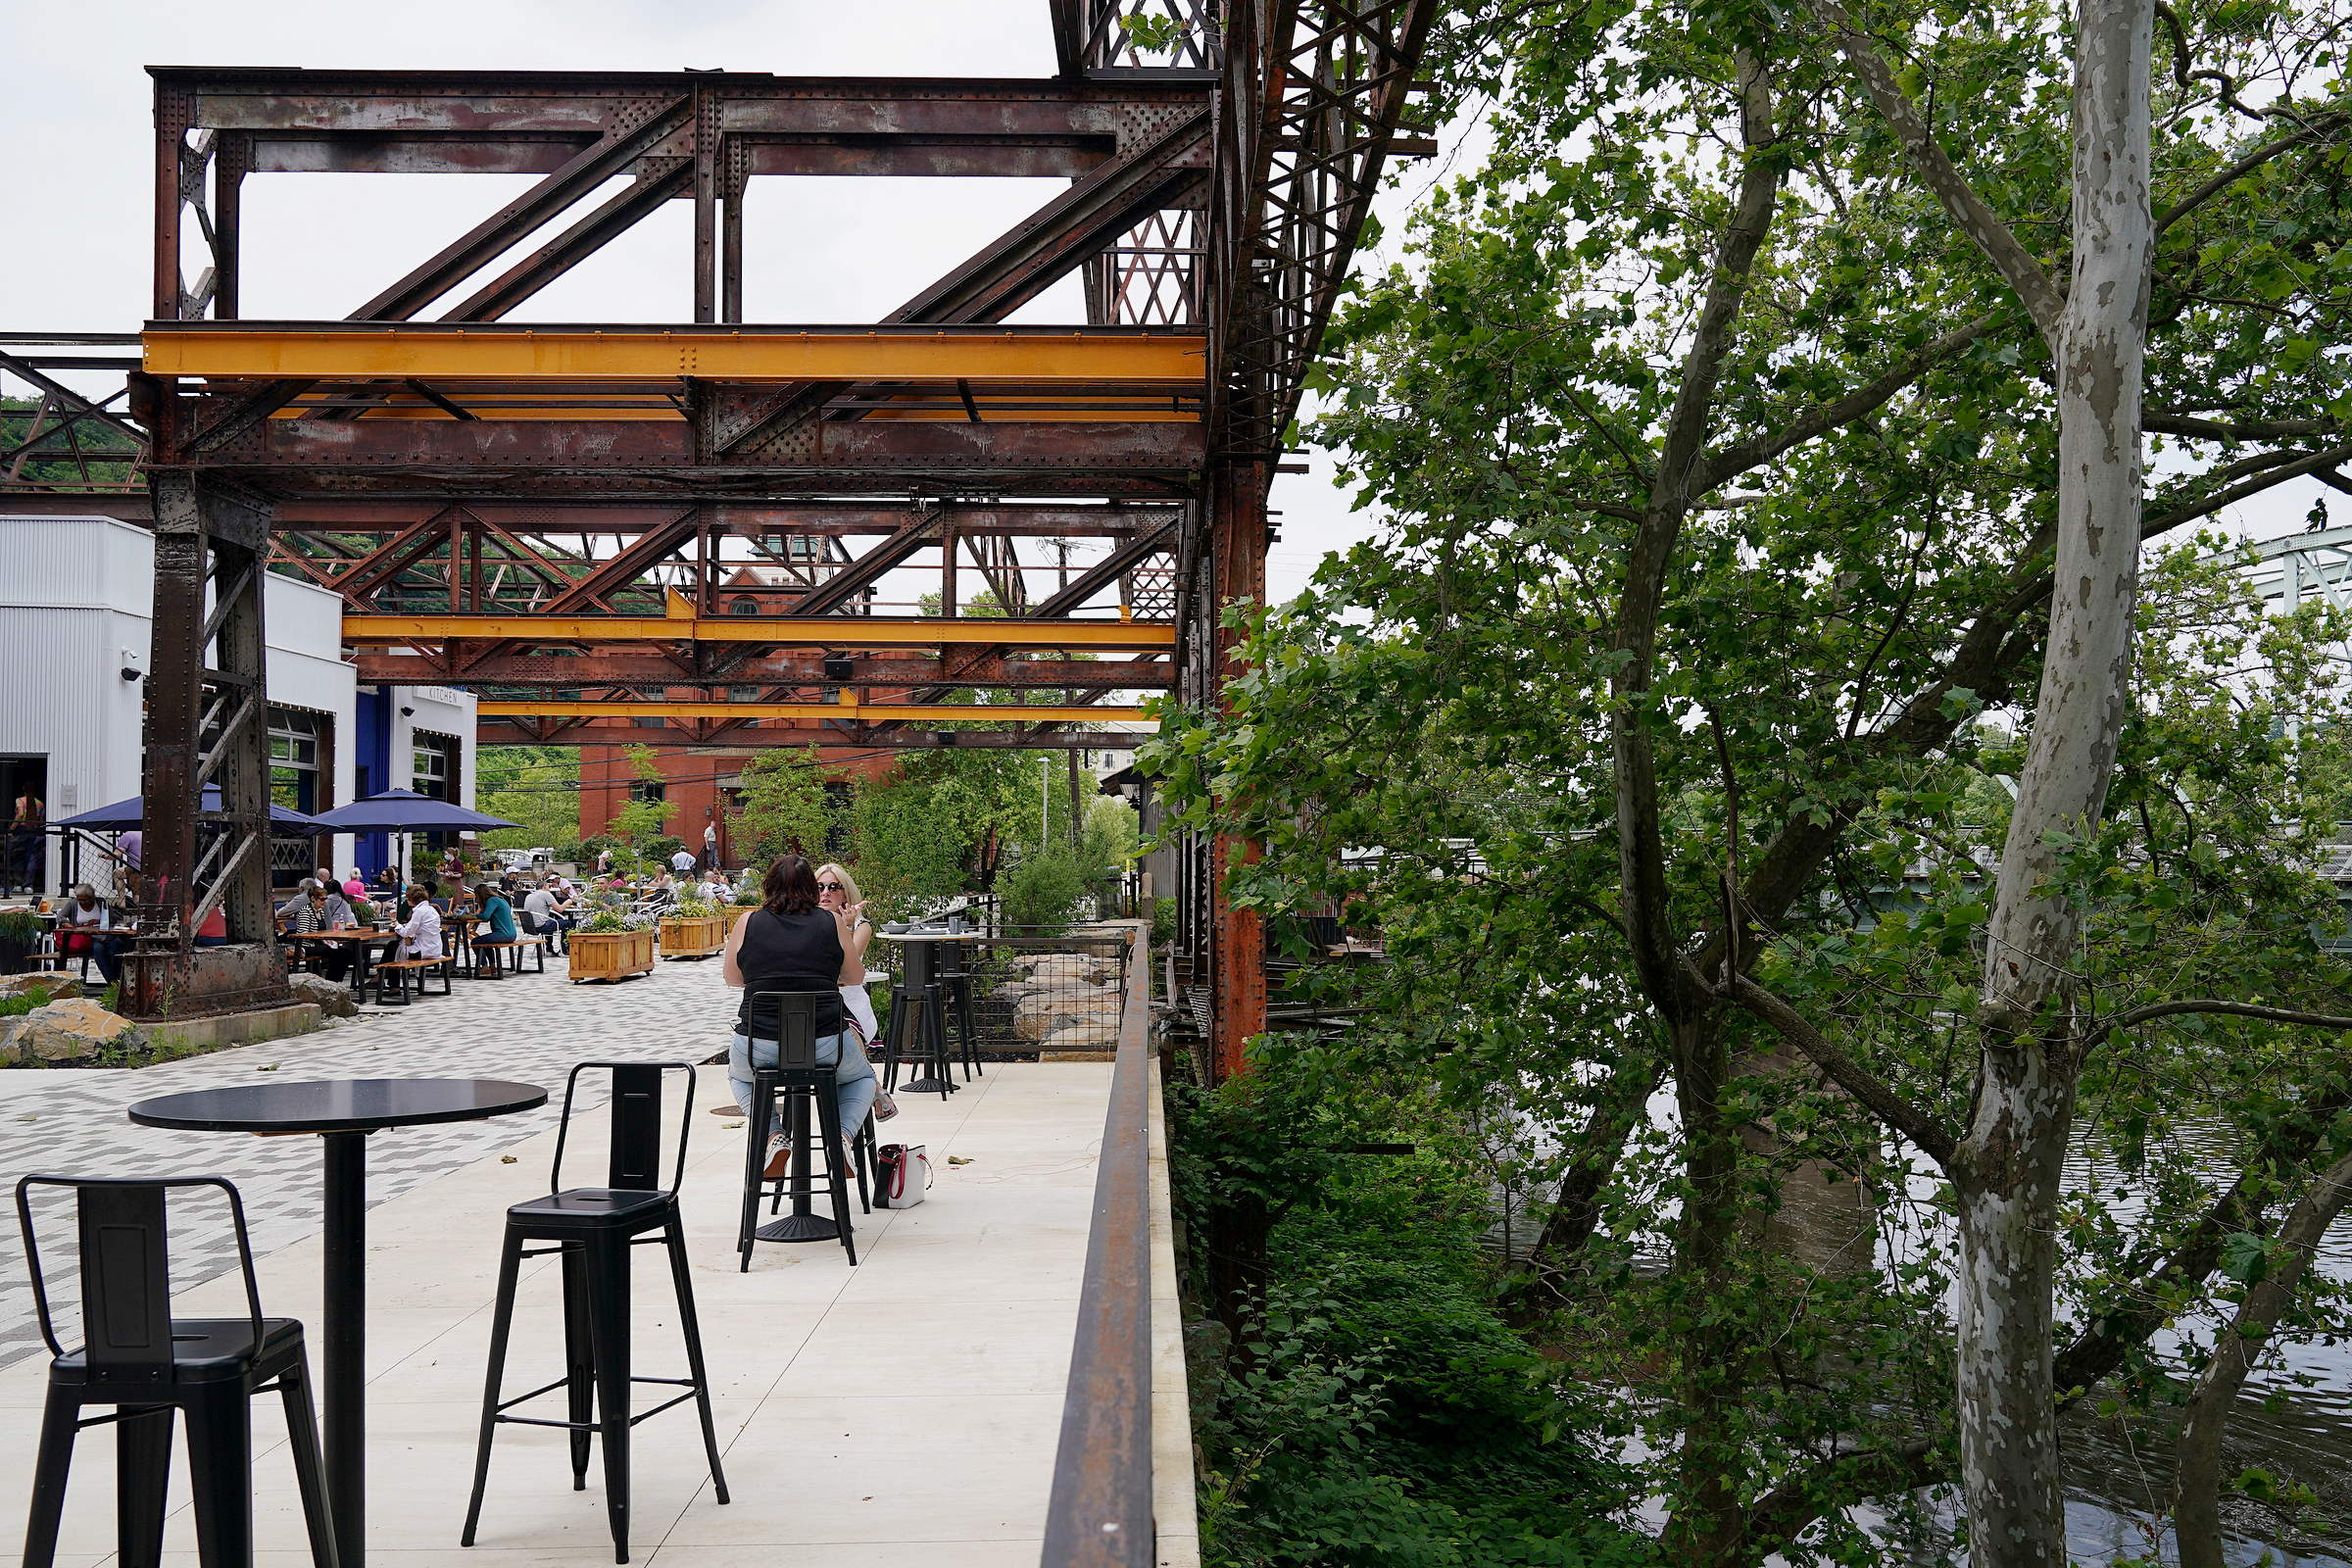 High tables line the river's edge at Pencoyd Landing. The Schuylkill's bank is much higher on the Lower Merion side than it is in Manayunk.